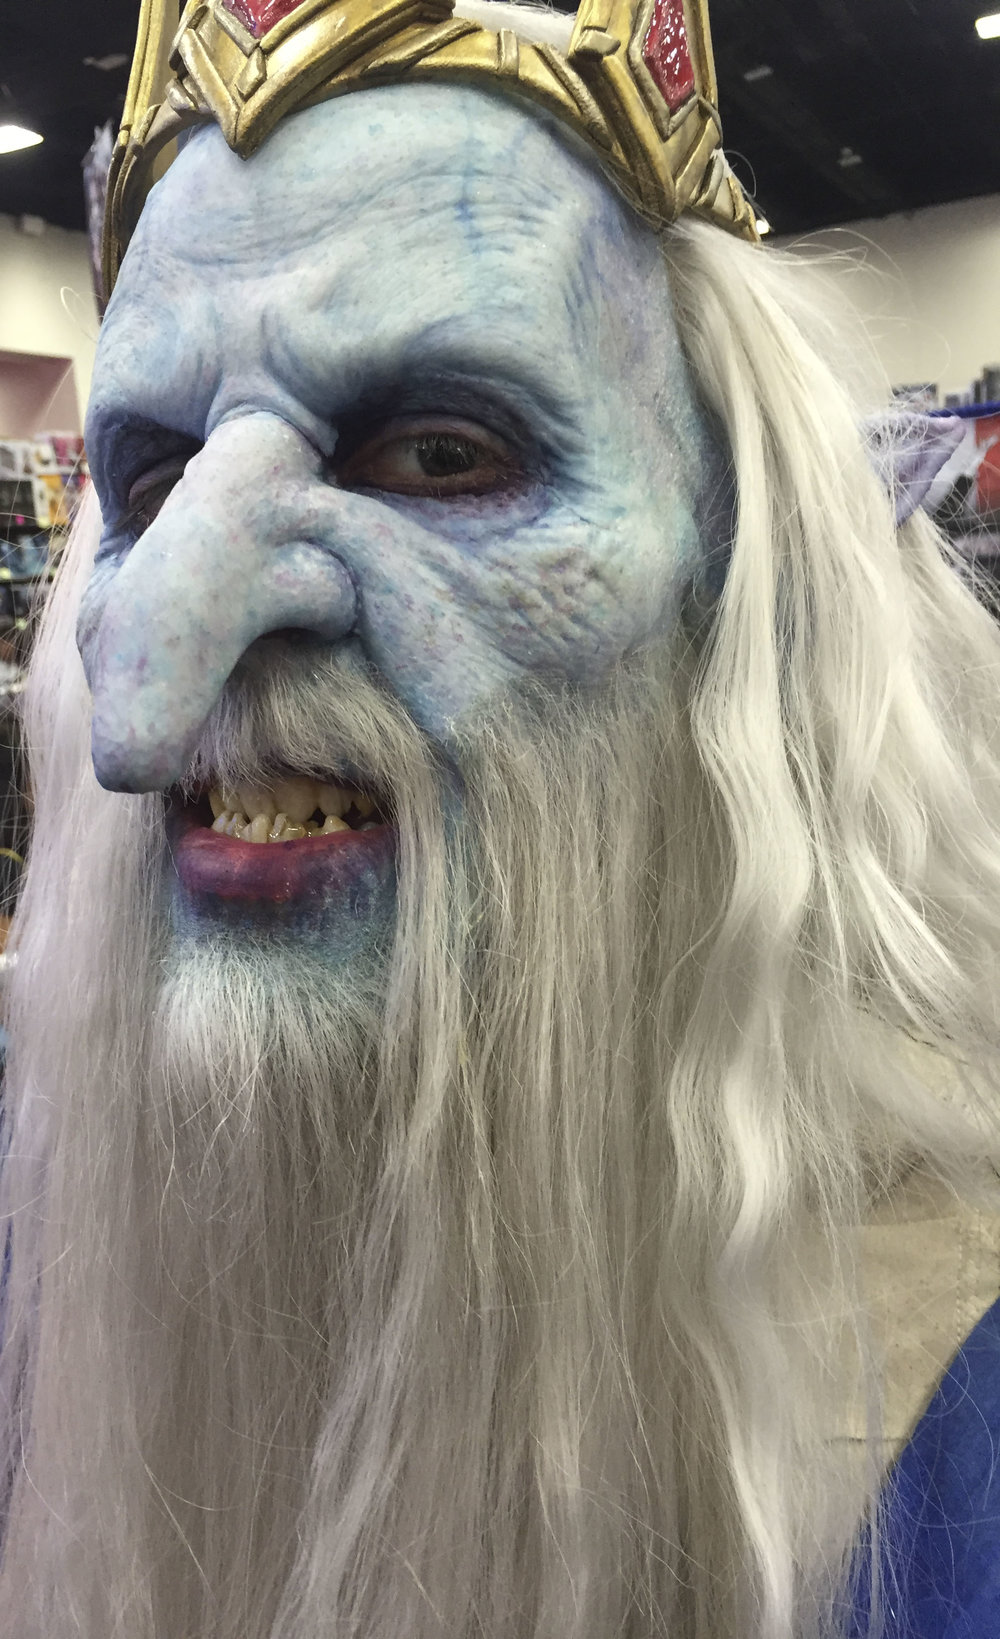 Ice king day 2 close up right.jpg